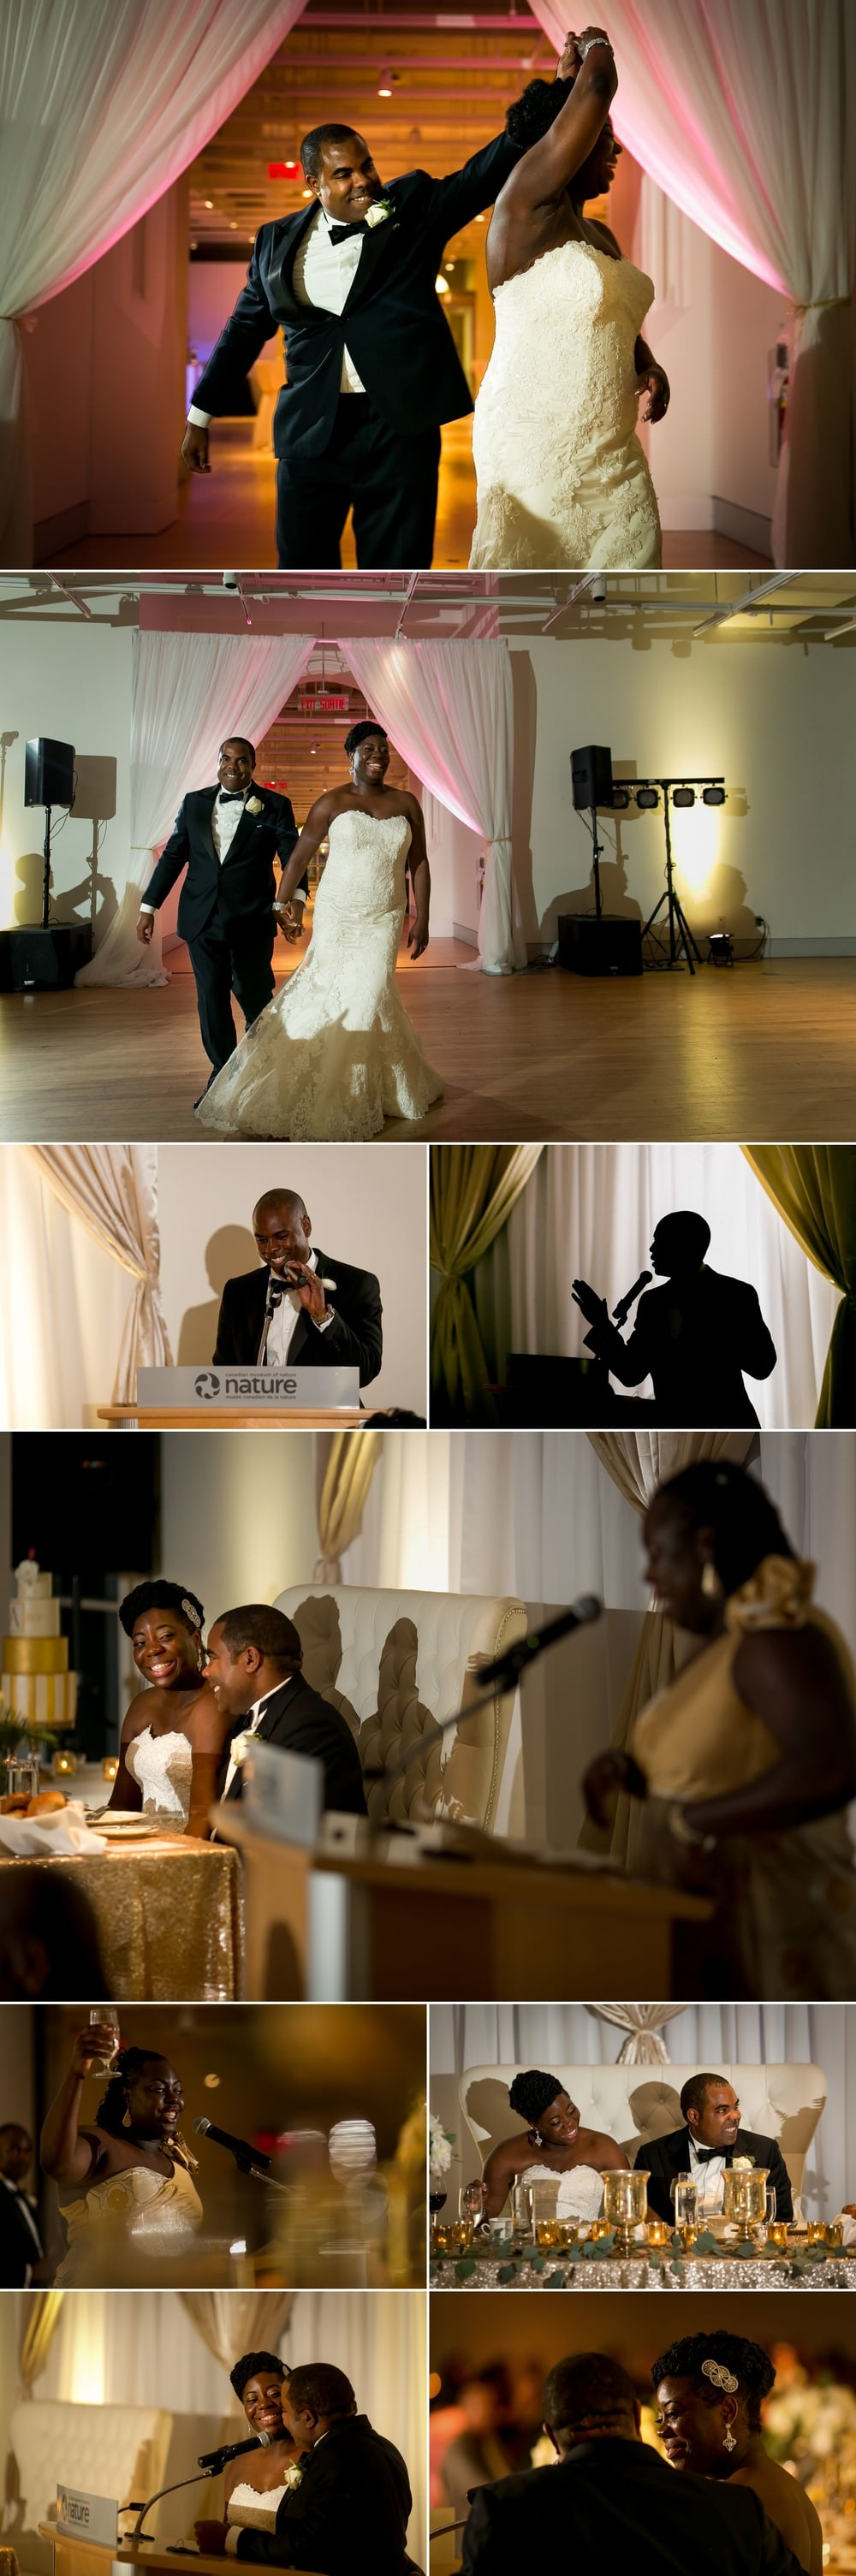 Grand entrance and speech photographs